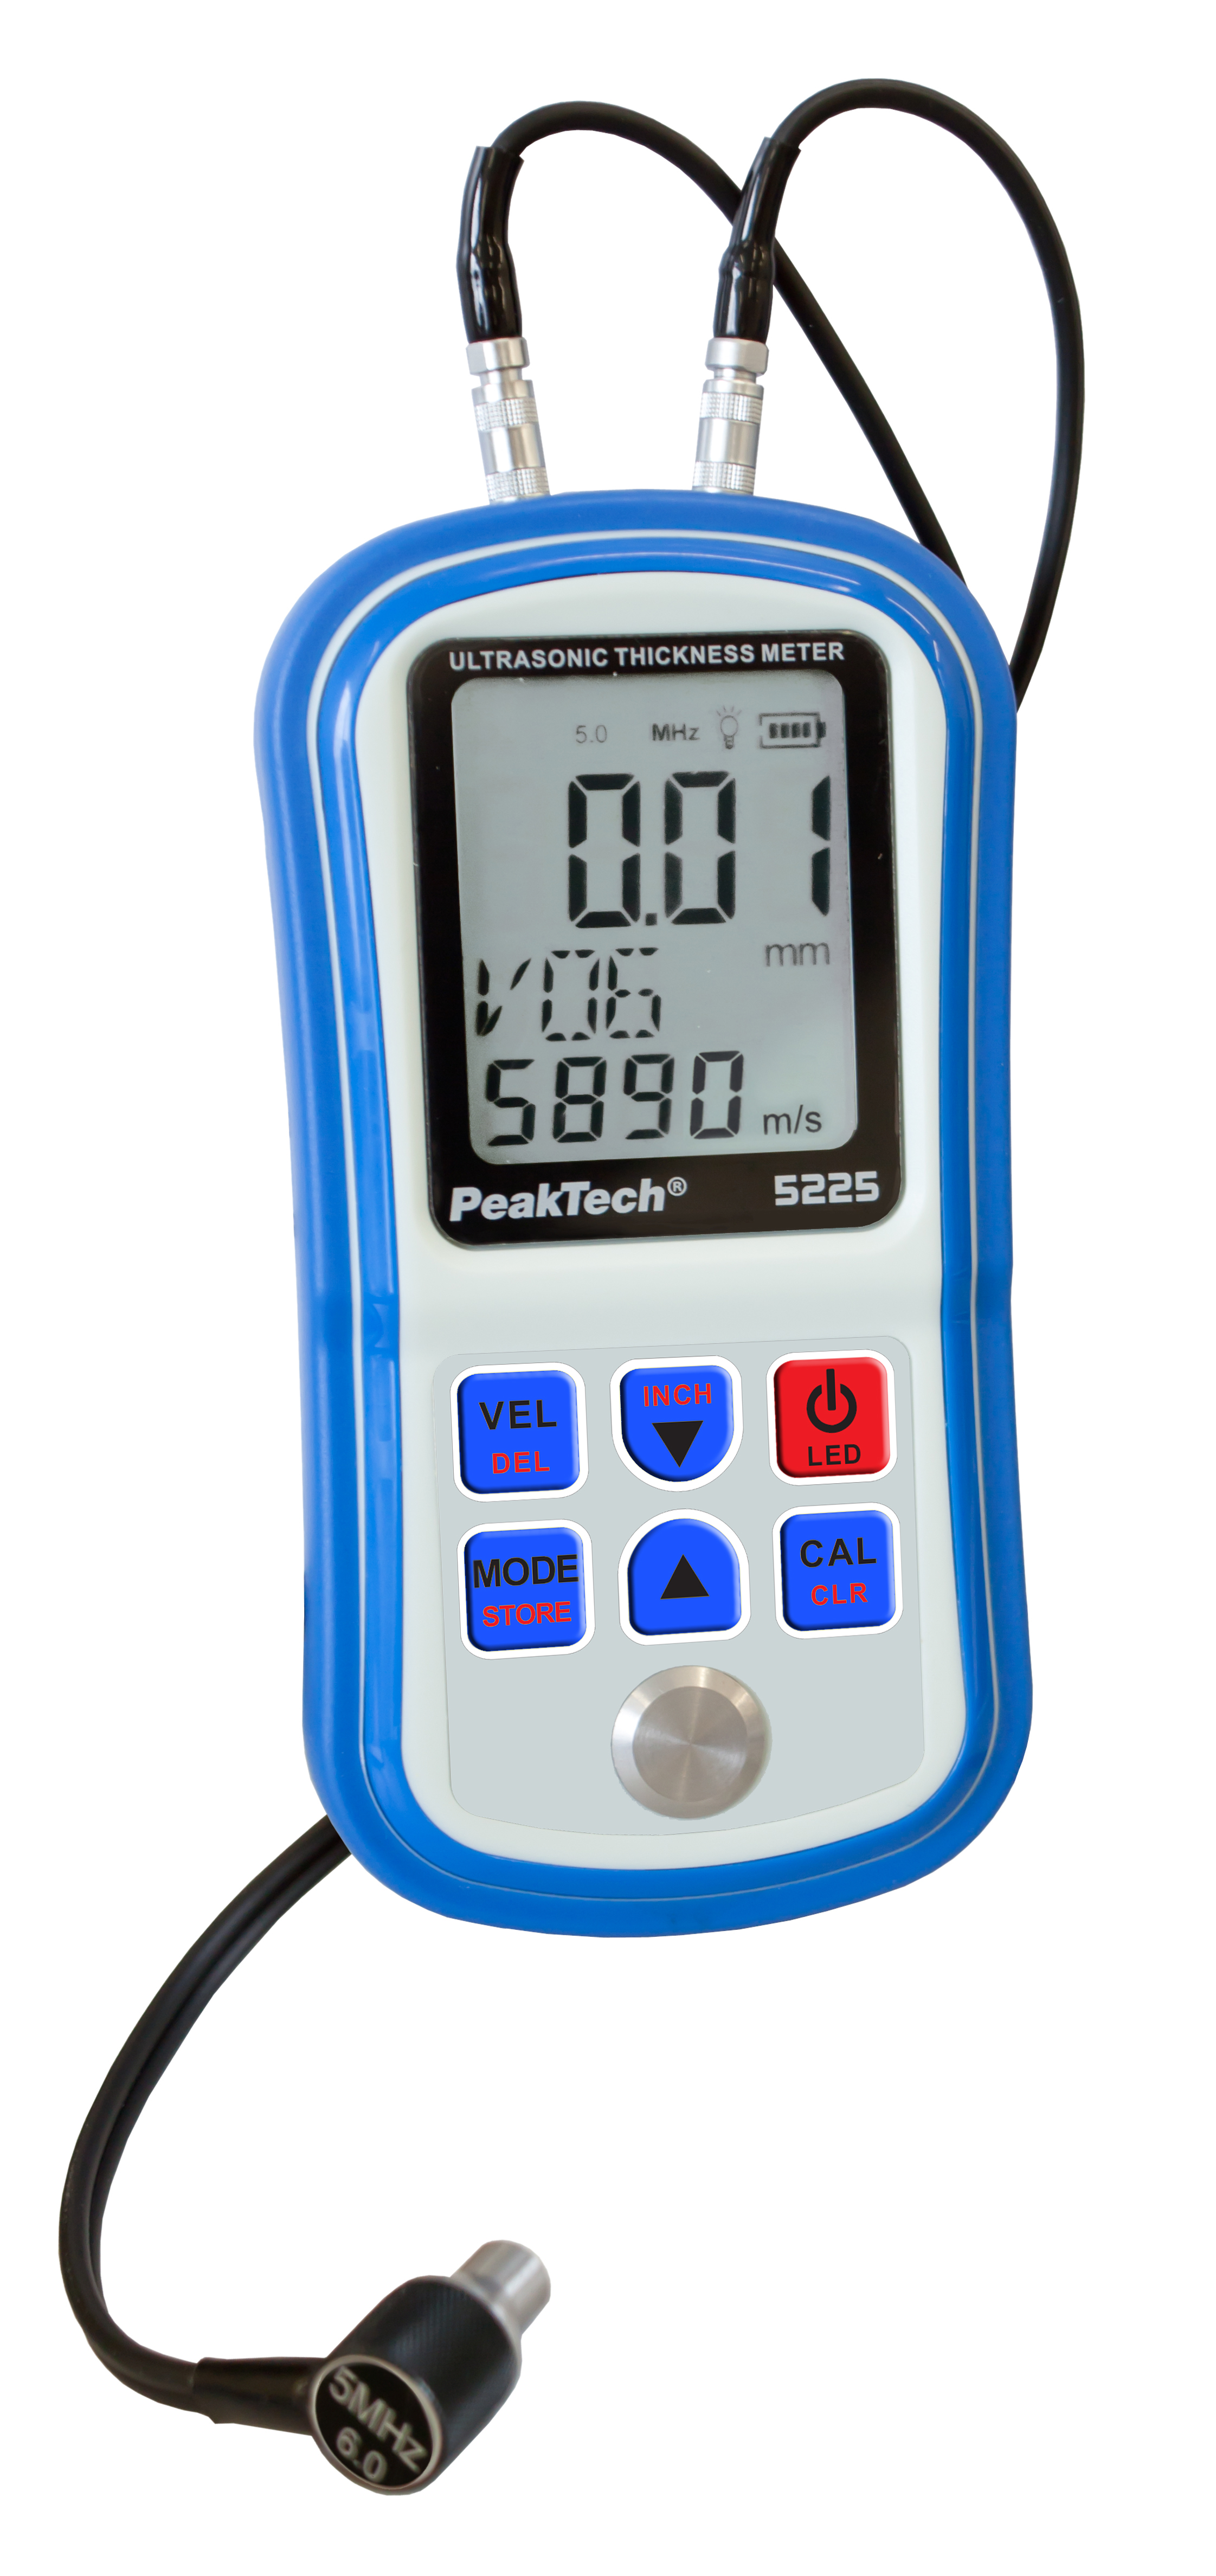 «PeakTech® P 5225» Ultrasonic Coating & Material Thickness Meter